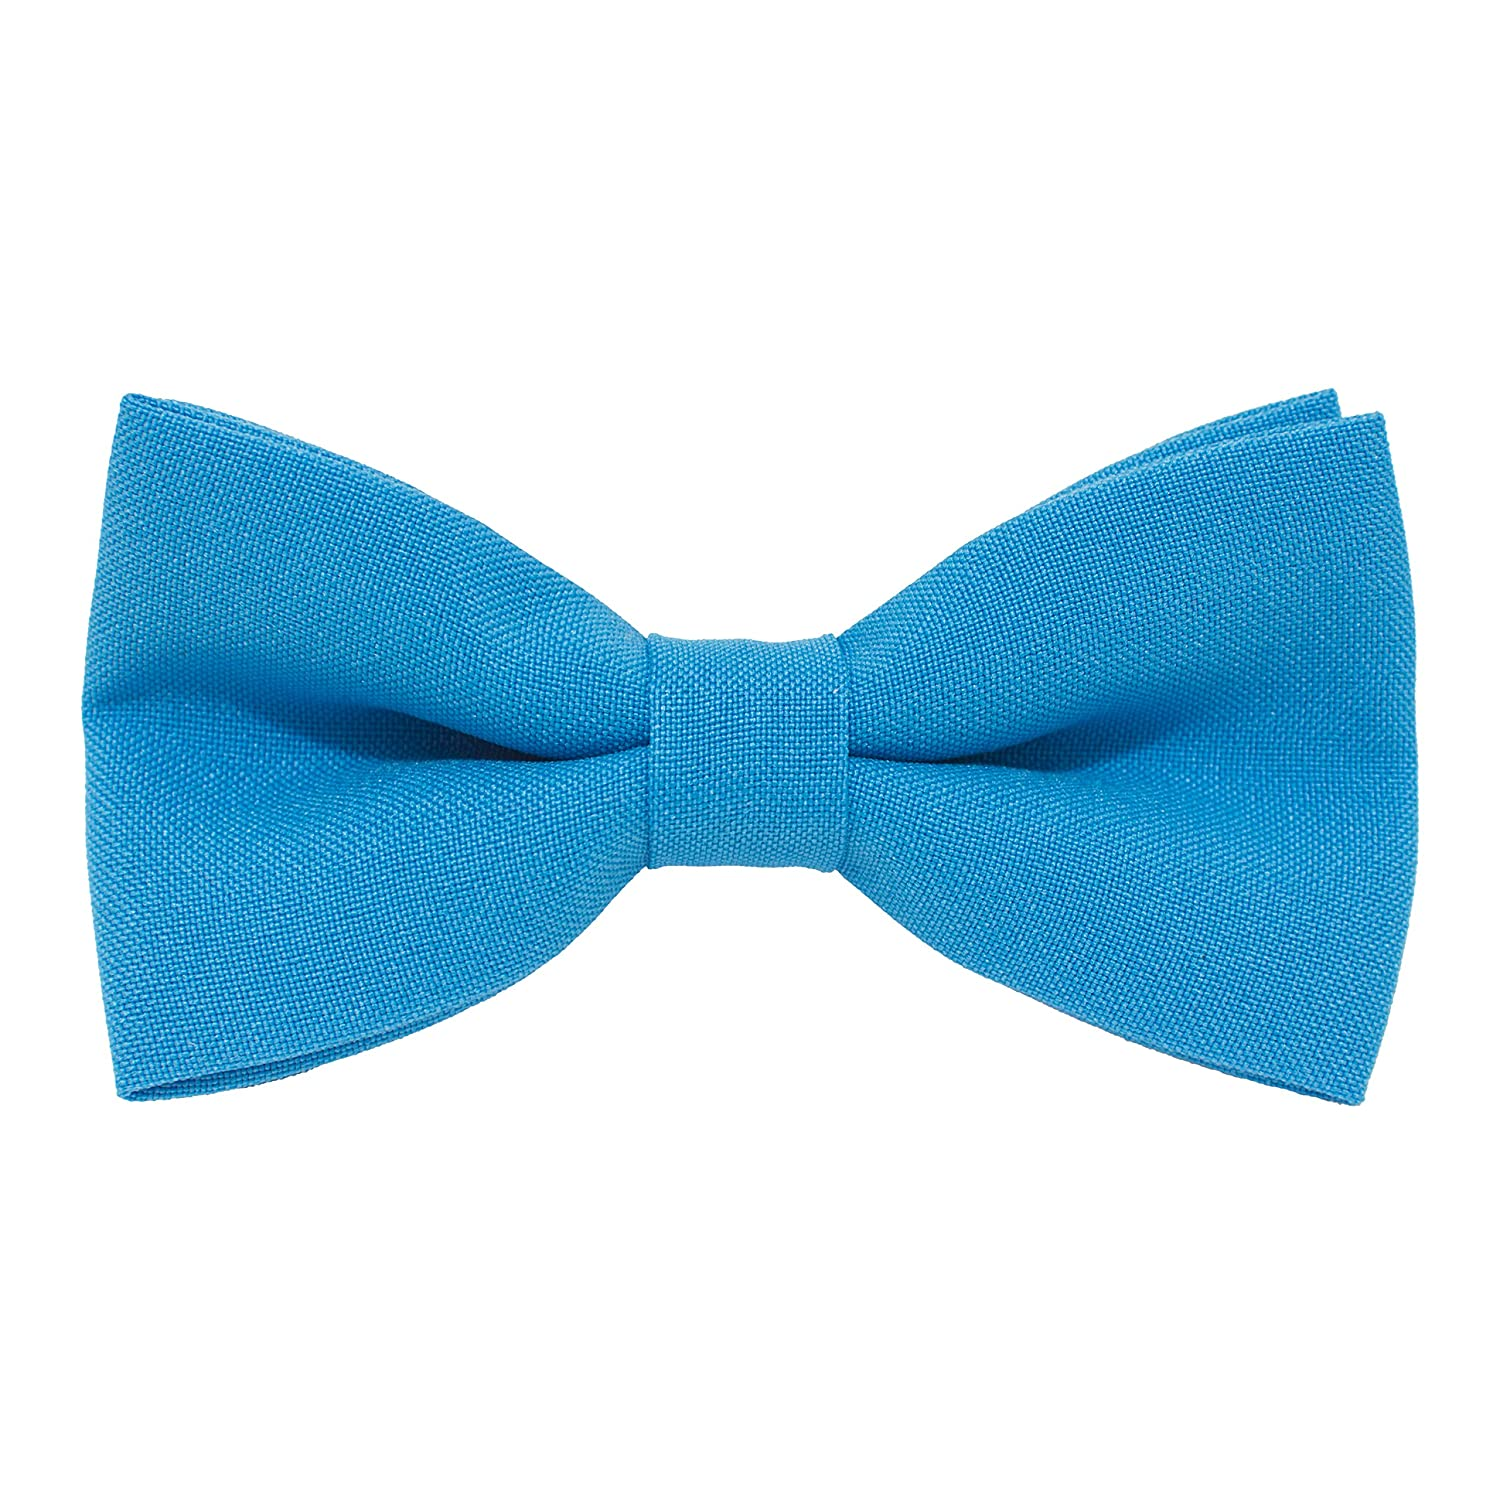 Bow Tie House Classic Pre-Tied Bow Tie Formal Solid Tuxedo for Adults /& Children by